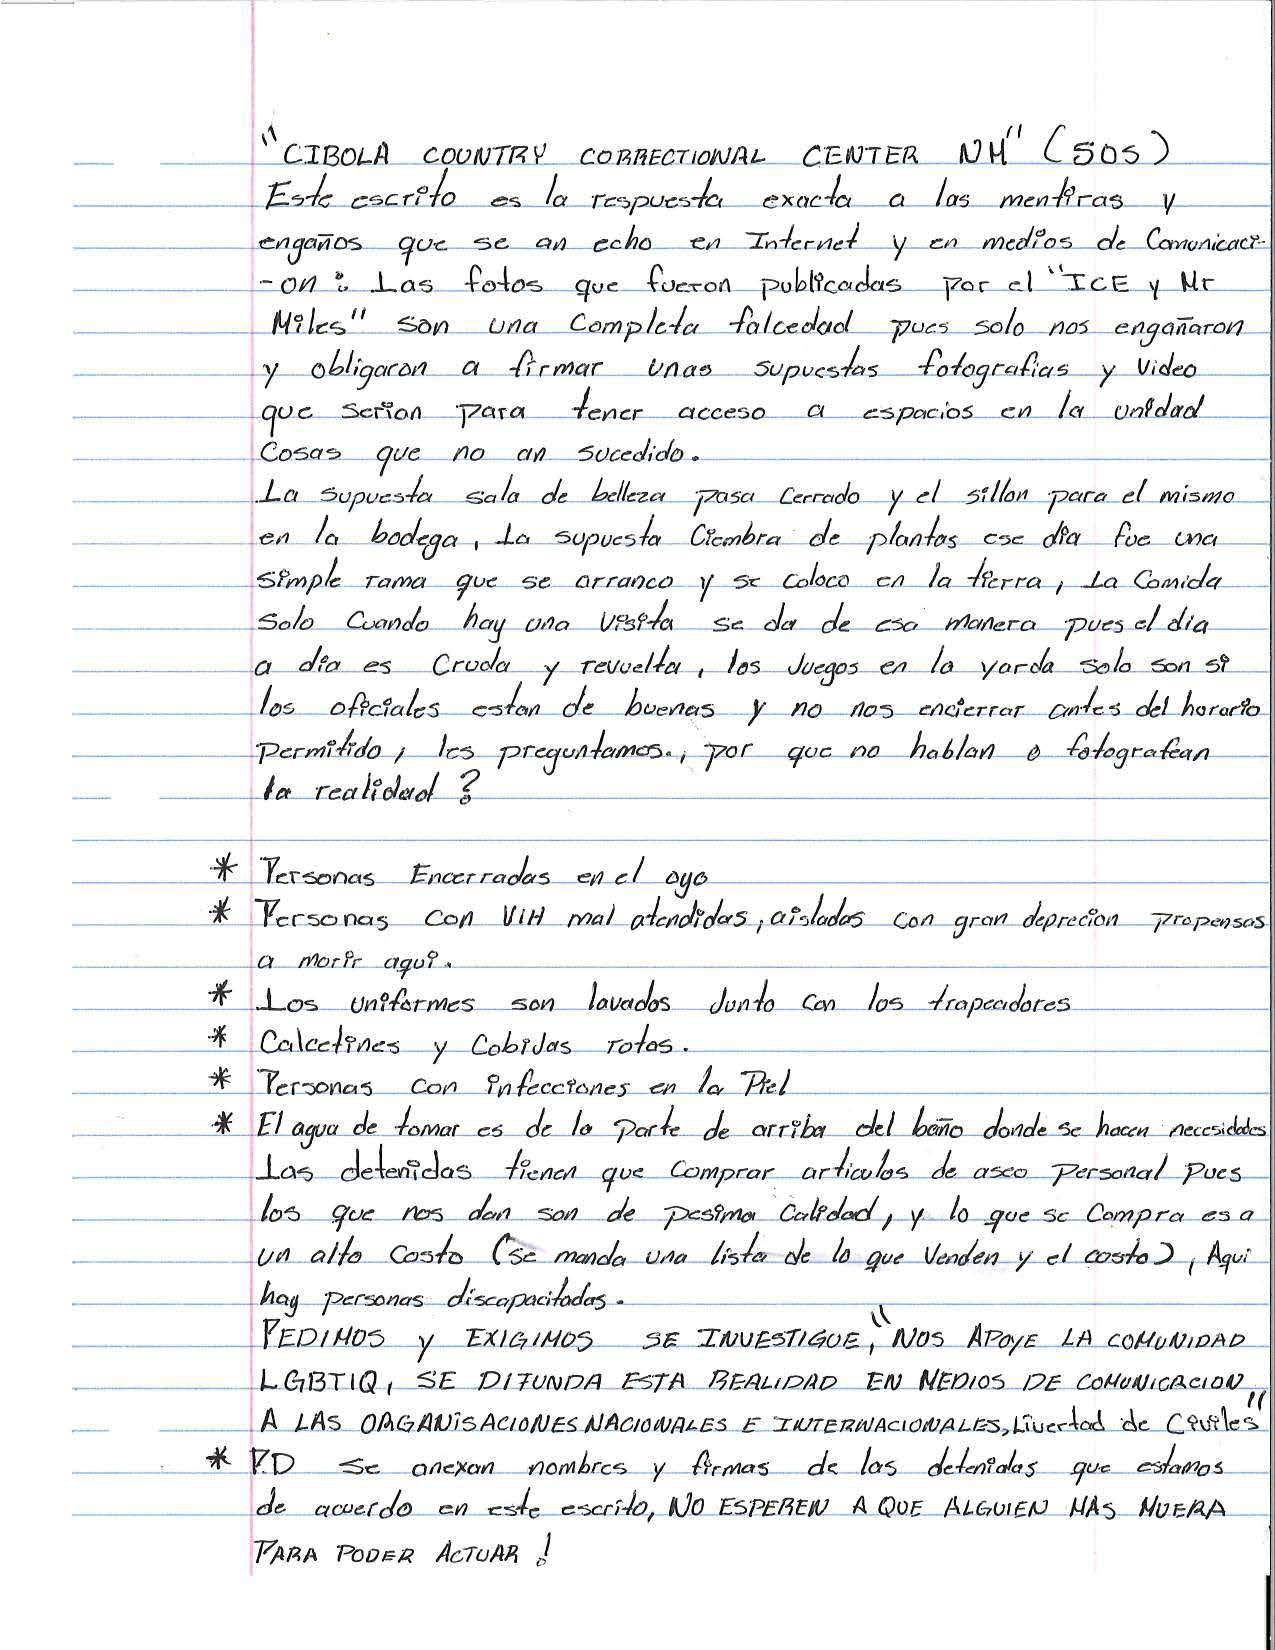 Image of the letter from trans detainees